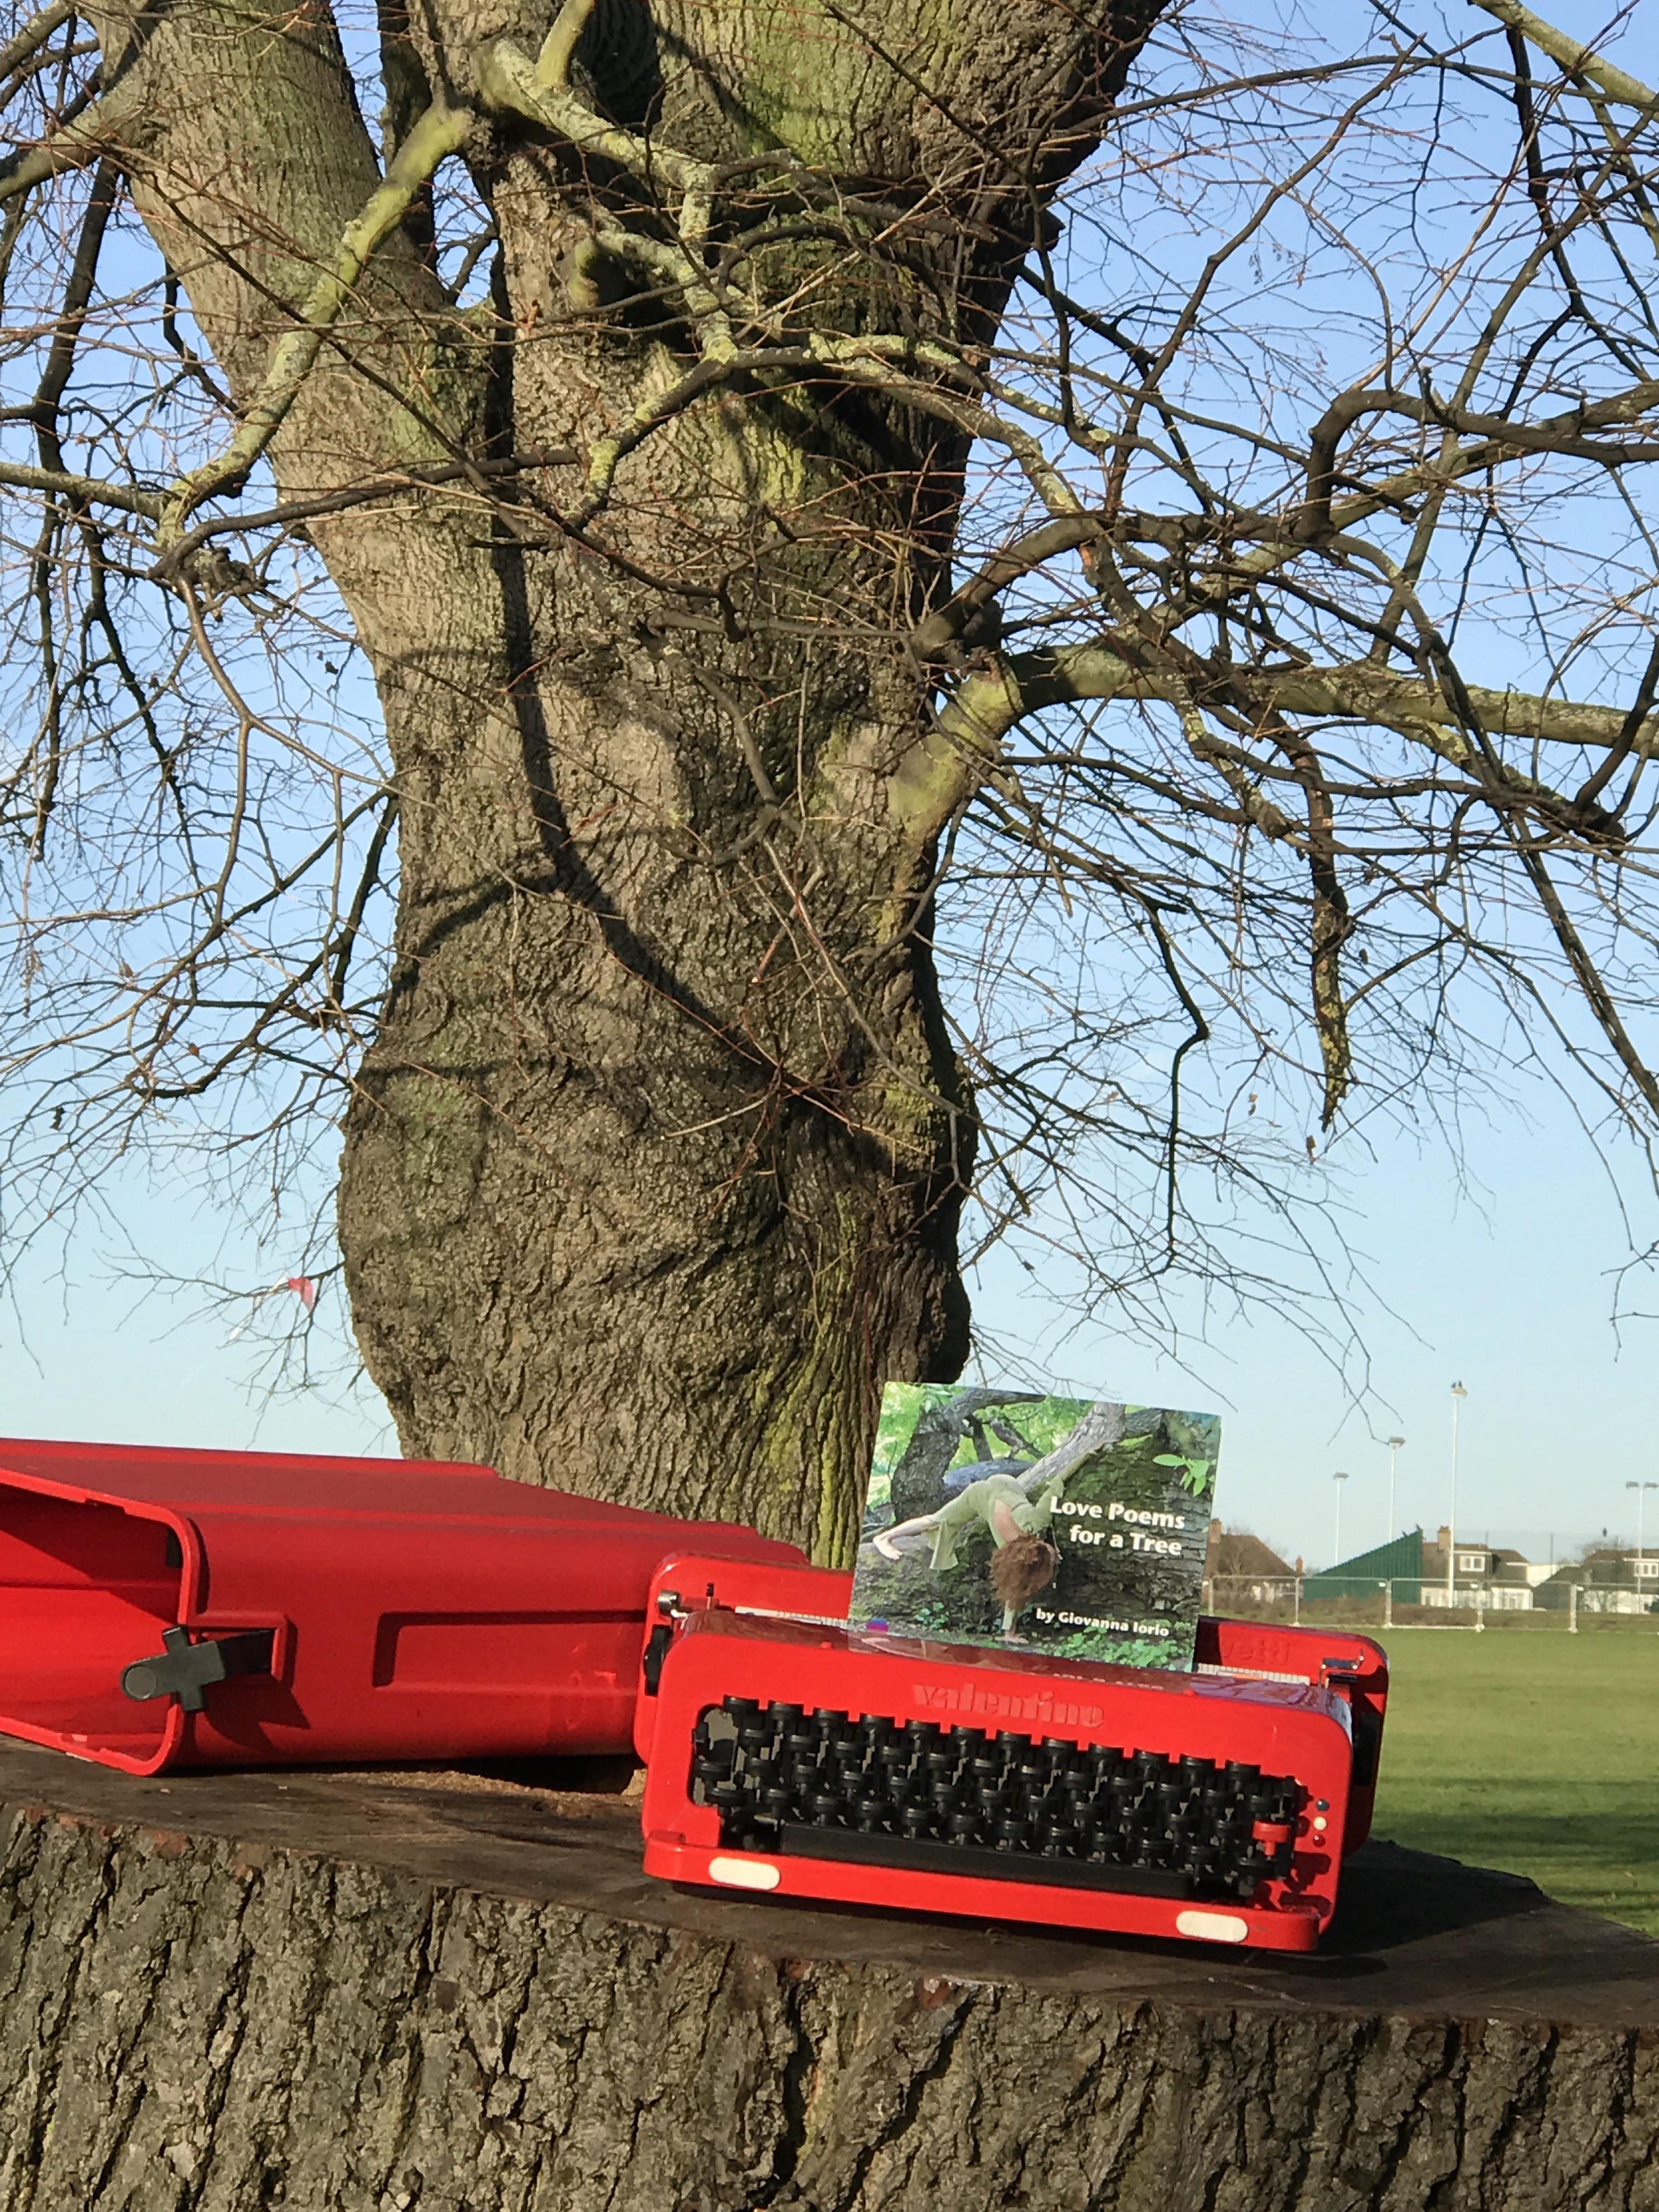 I WILL WRITE AND READ MY POEMS IN LONDON PARKS IN THE NEW YEAR